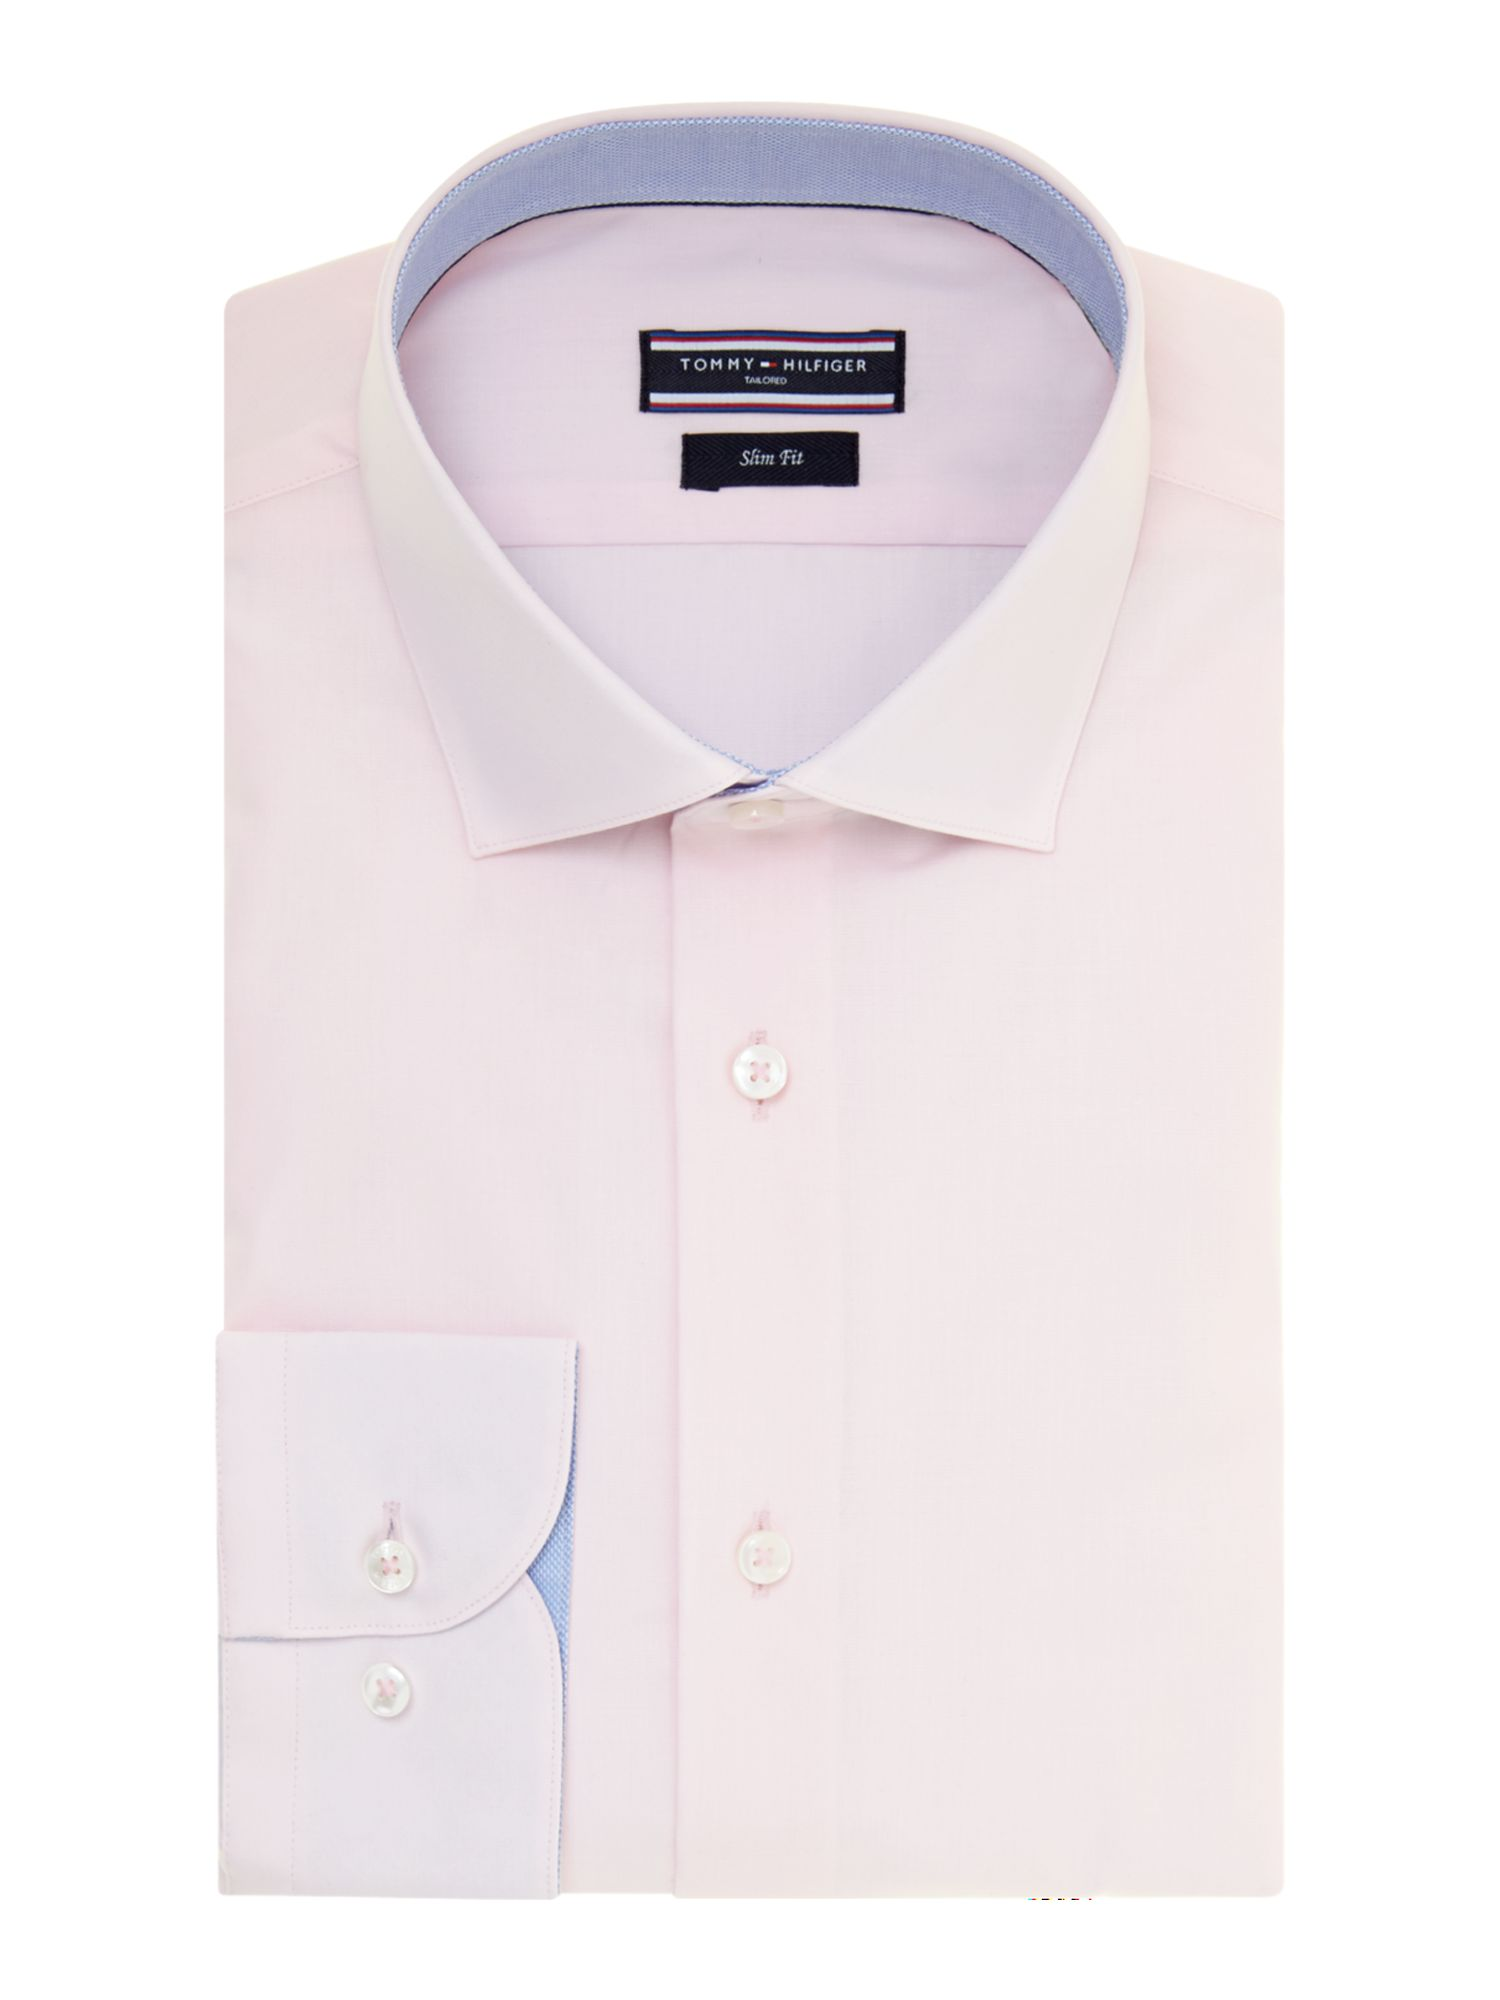 Louis poplin slim fit shirt